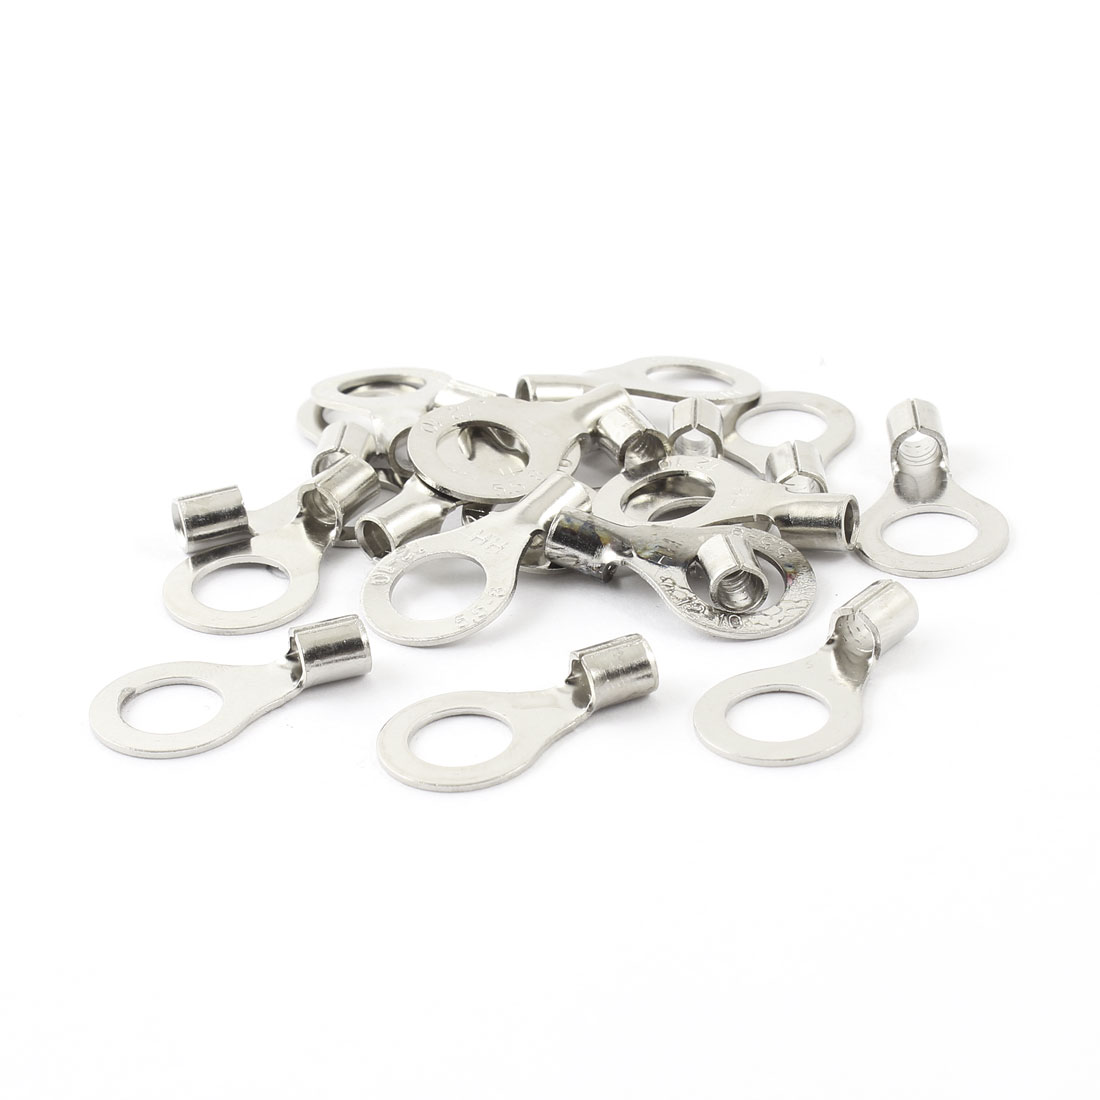 20 Pcs 3.6mm Stud Lug Cable Connector Non-insulated Ring Terminal